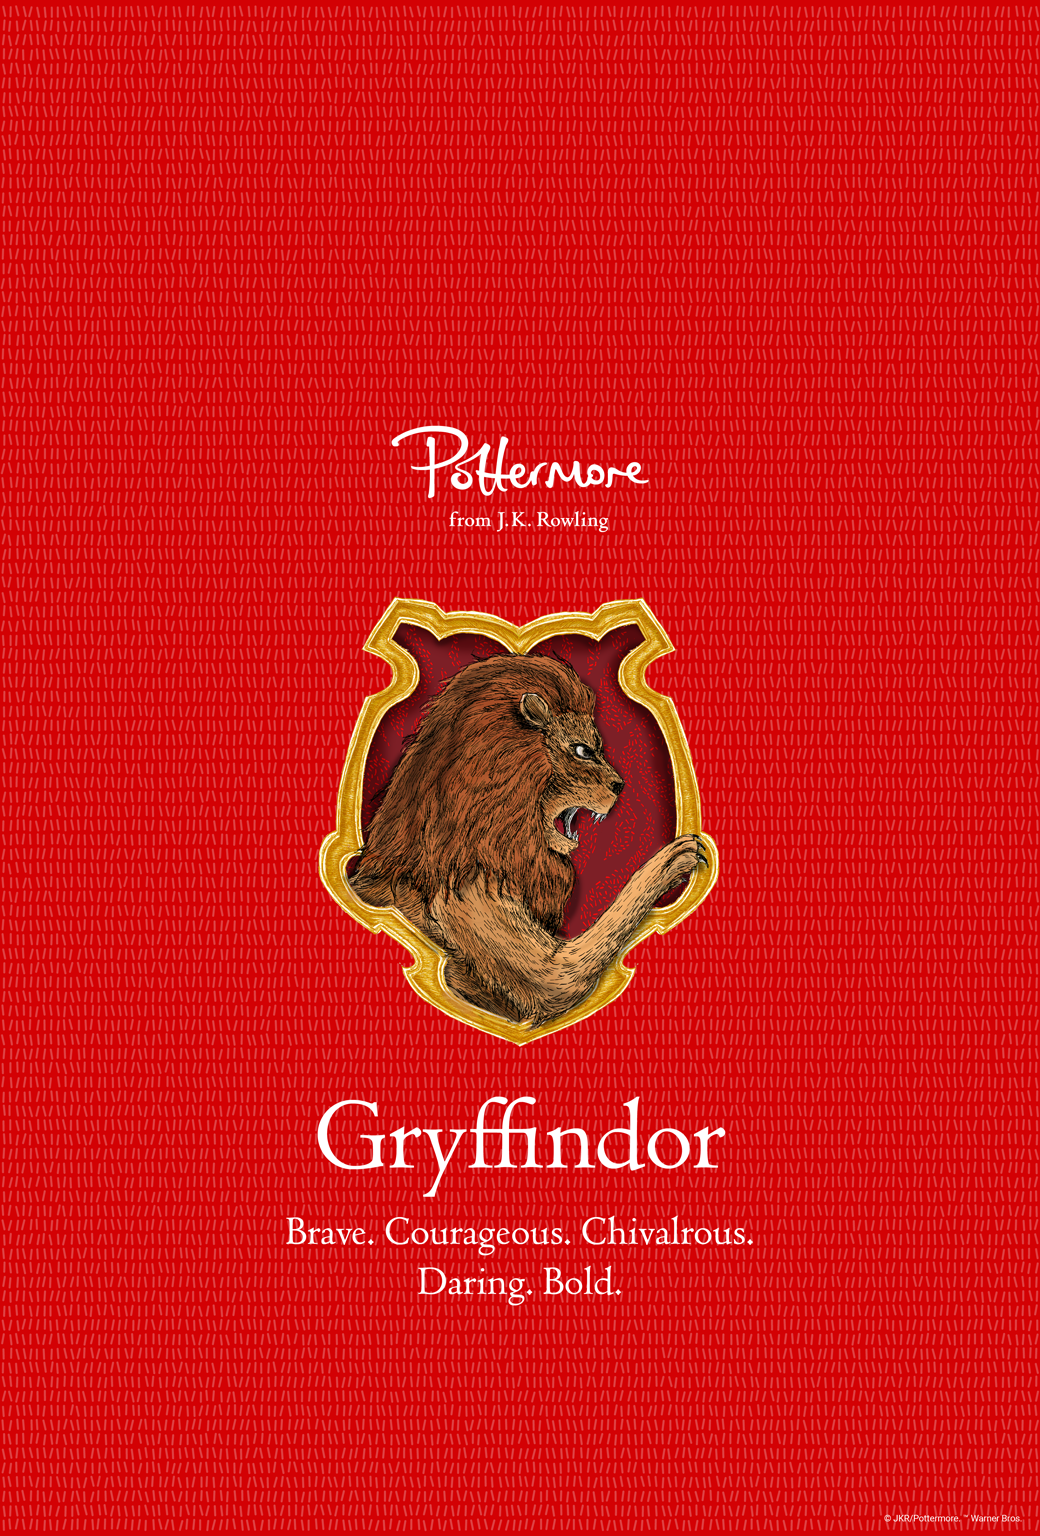 gryffindor dating Many of us probably have a checklist of characteristics that we're looking for in a partner maybe we'd like to find a witch or wizard who is charming, clever and successful so, does that.